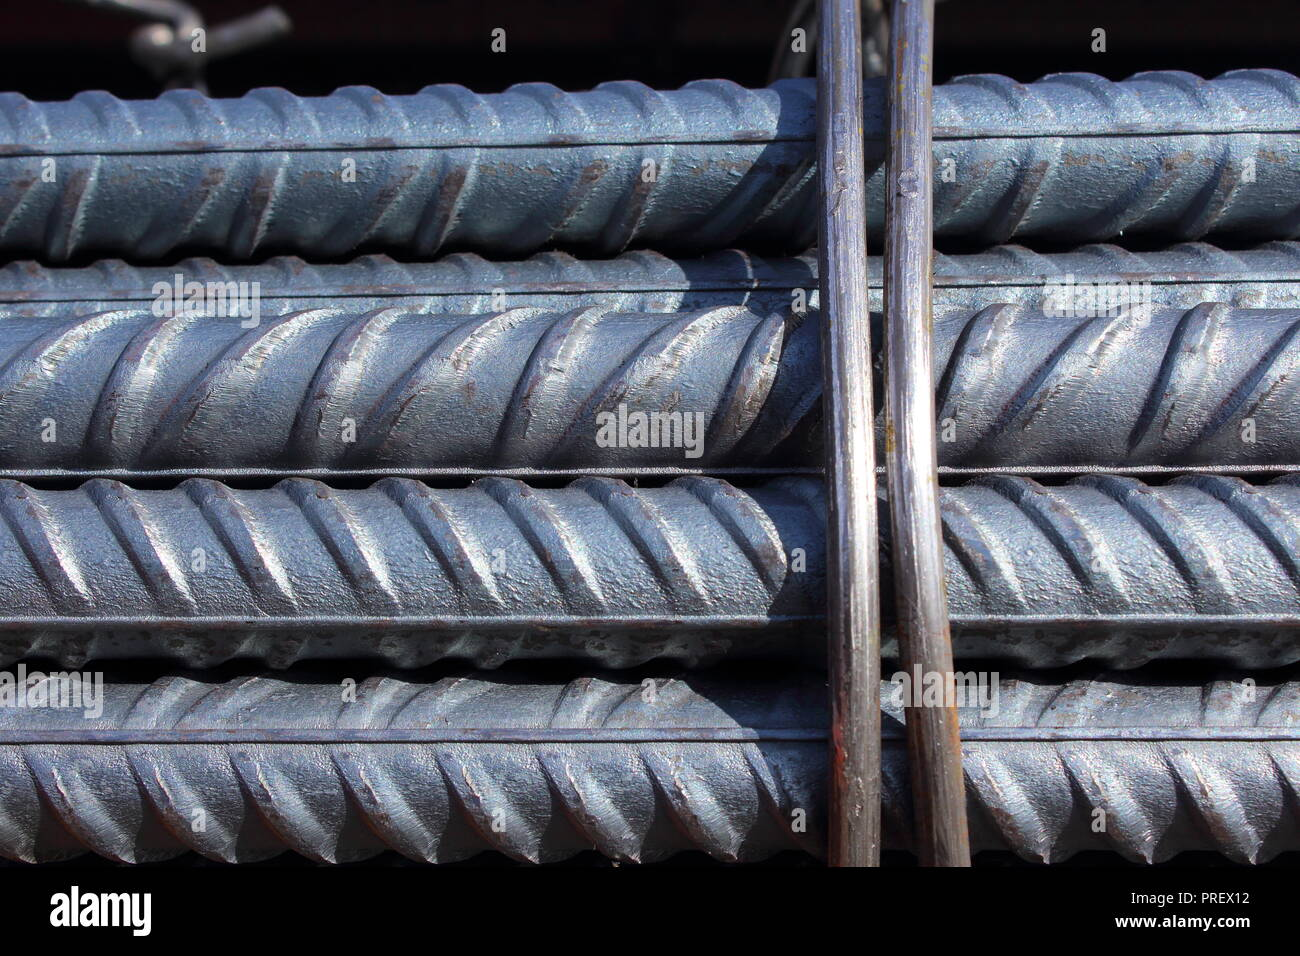 bundle of steel reinforcement bars - Stock Image